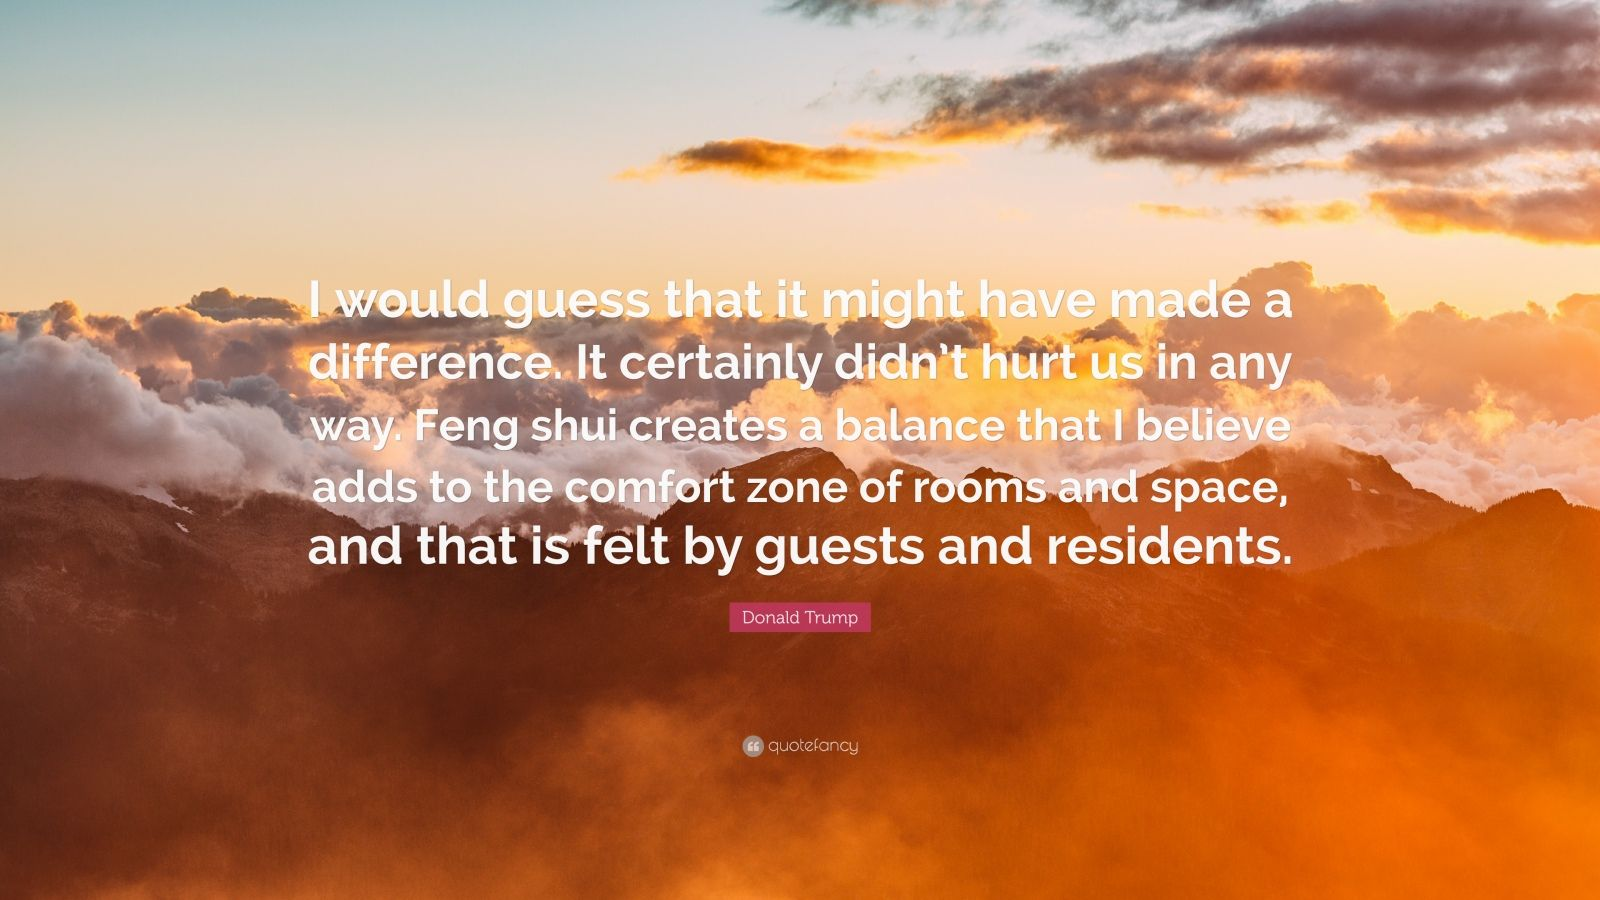 """Donald Trump Quote: """"I would guess that it might have made a difference. It certainly didn't hurt us in any way. Feng shui creates a balance that I believe adds to the comfort zone of rooms and space, and that is felt by guests and residents."""""""